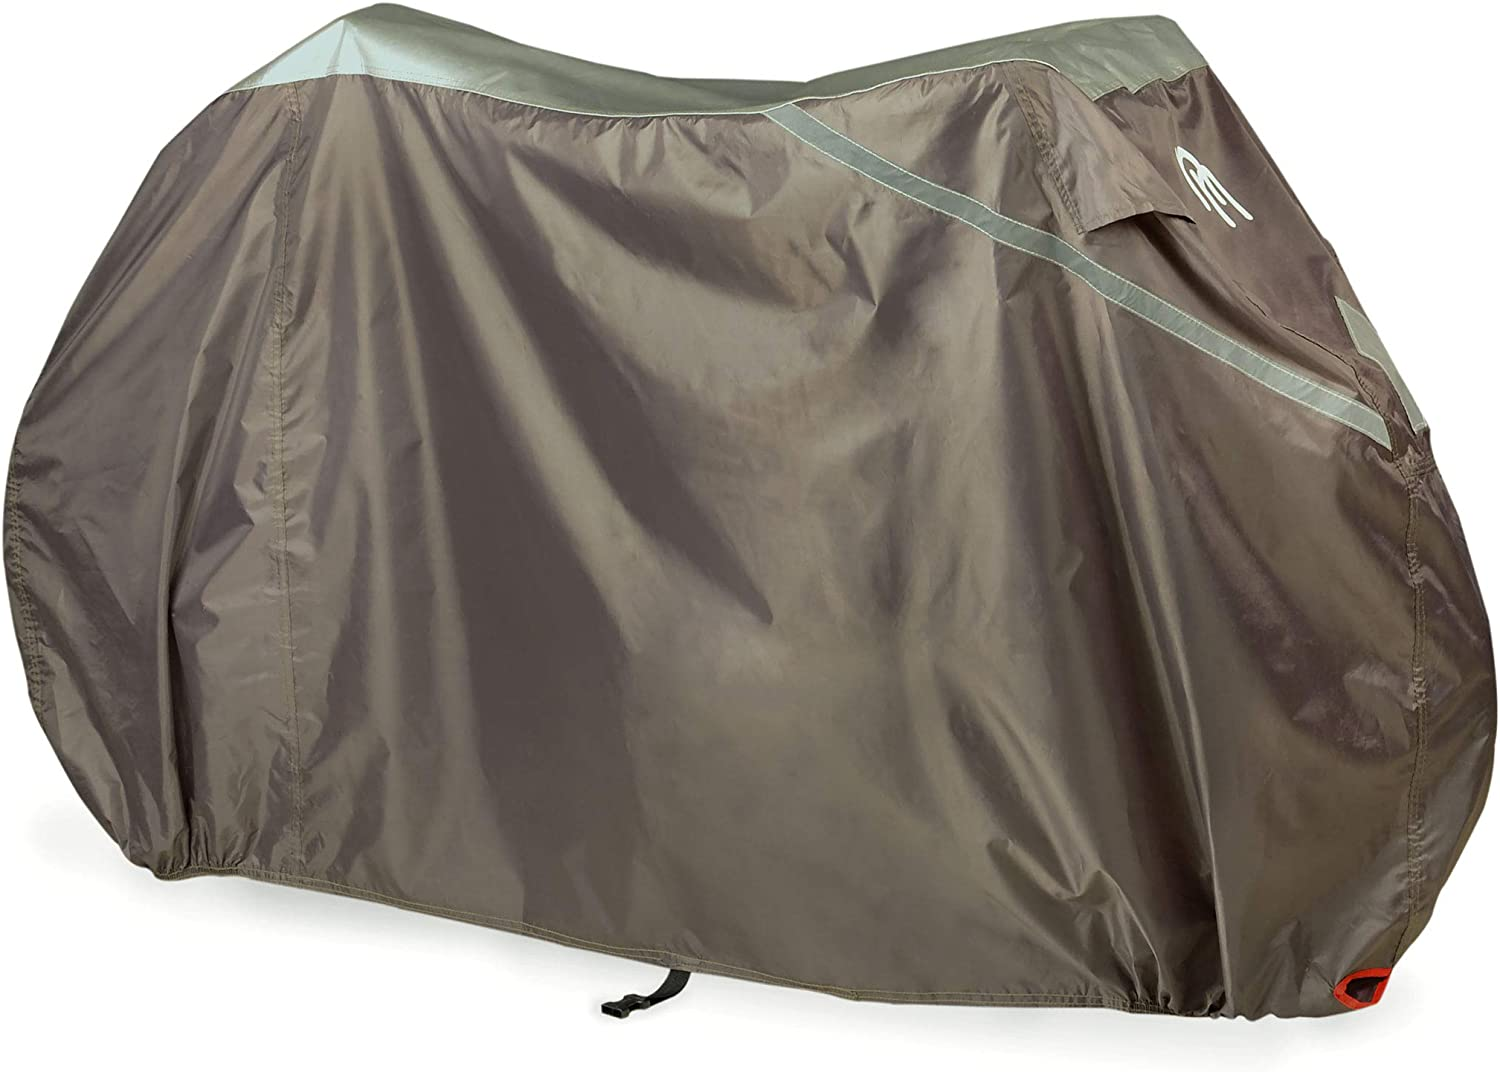 Single//Double//Triple Bicycle Bike Cycle Cover Waterproof Rain Dust Protector+Bag